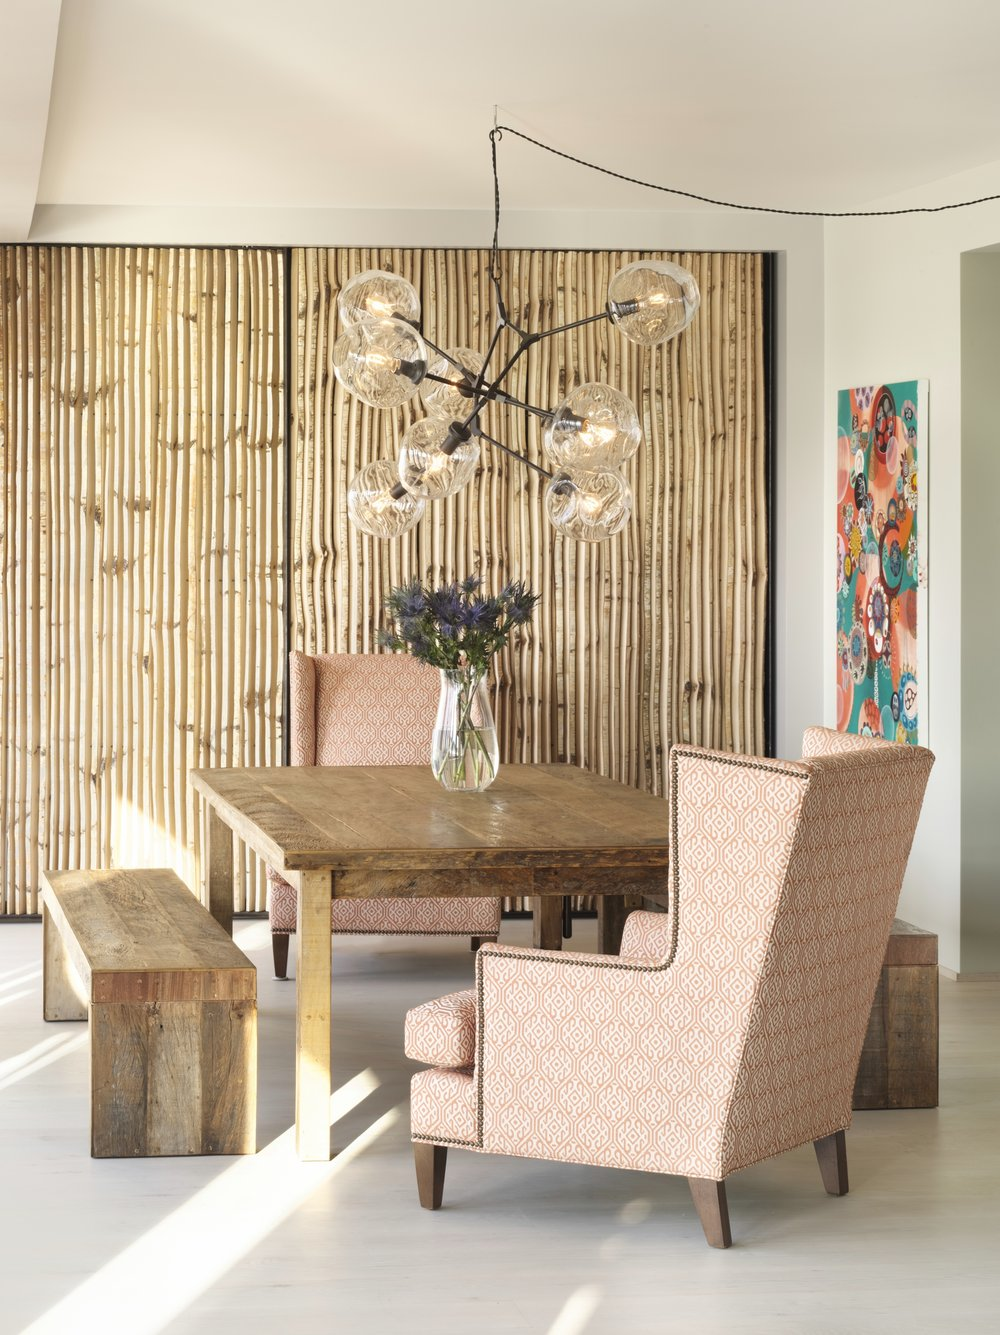 Bohemian Apartment Dining Room and Table